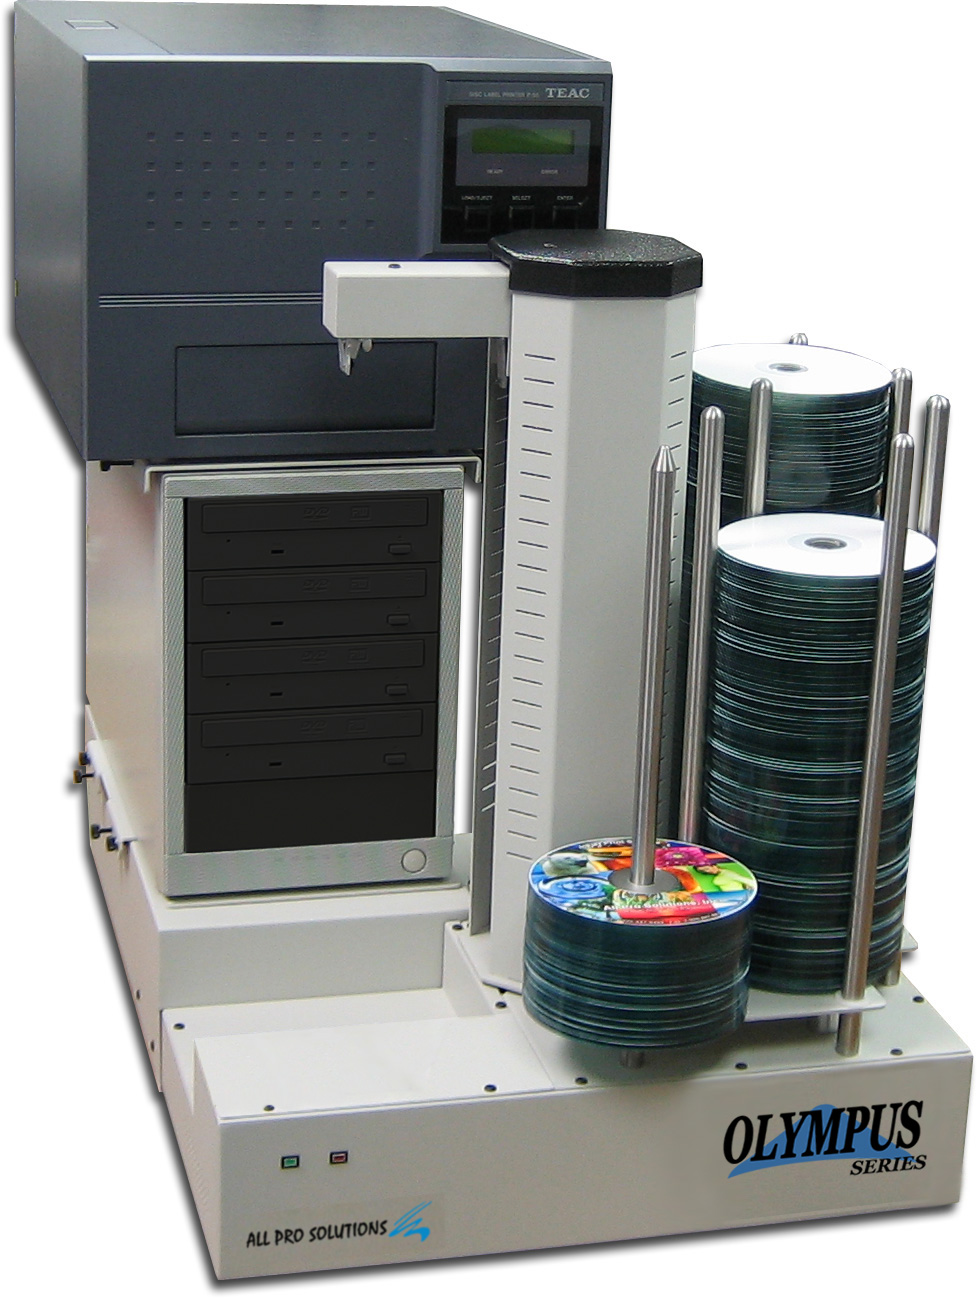 All Pro Solutions Olympus 4T BD